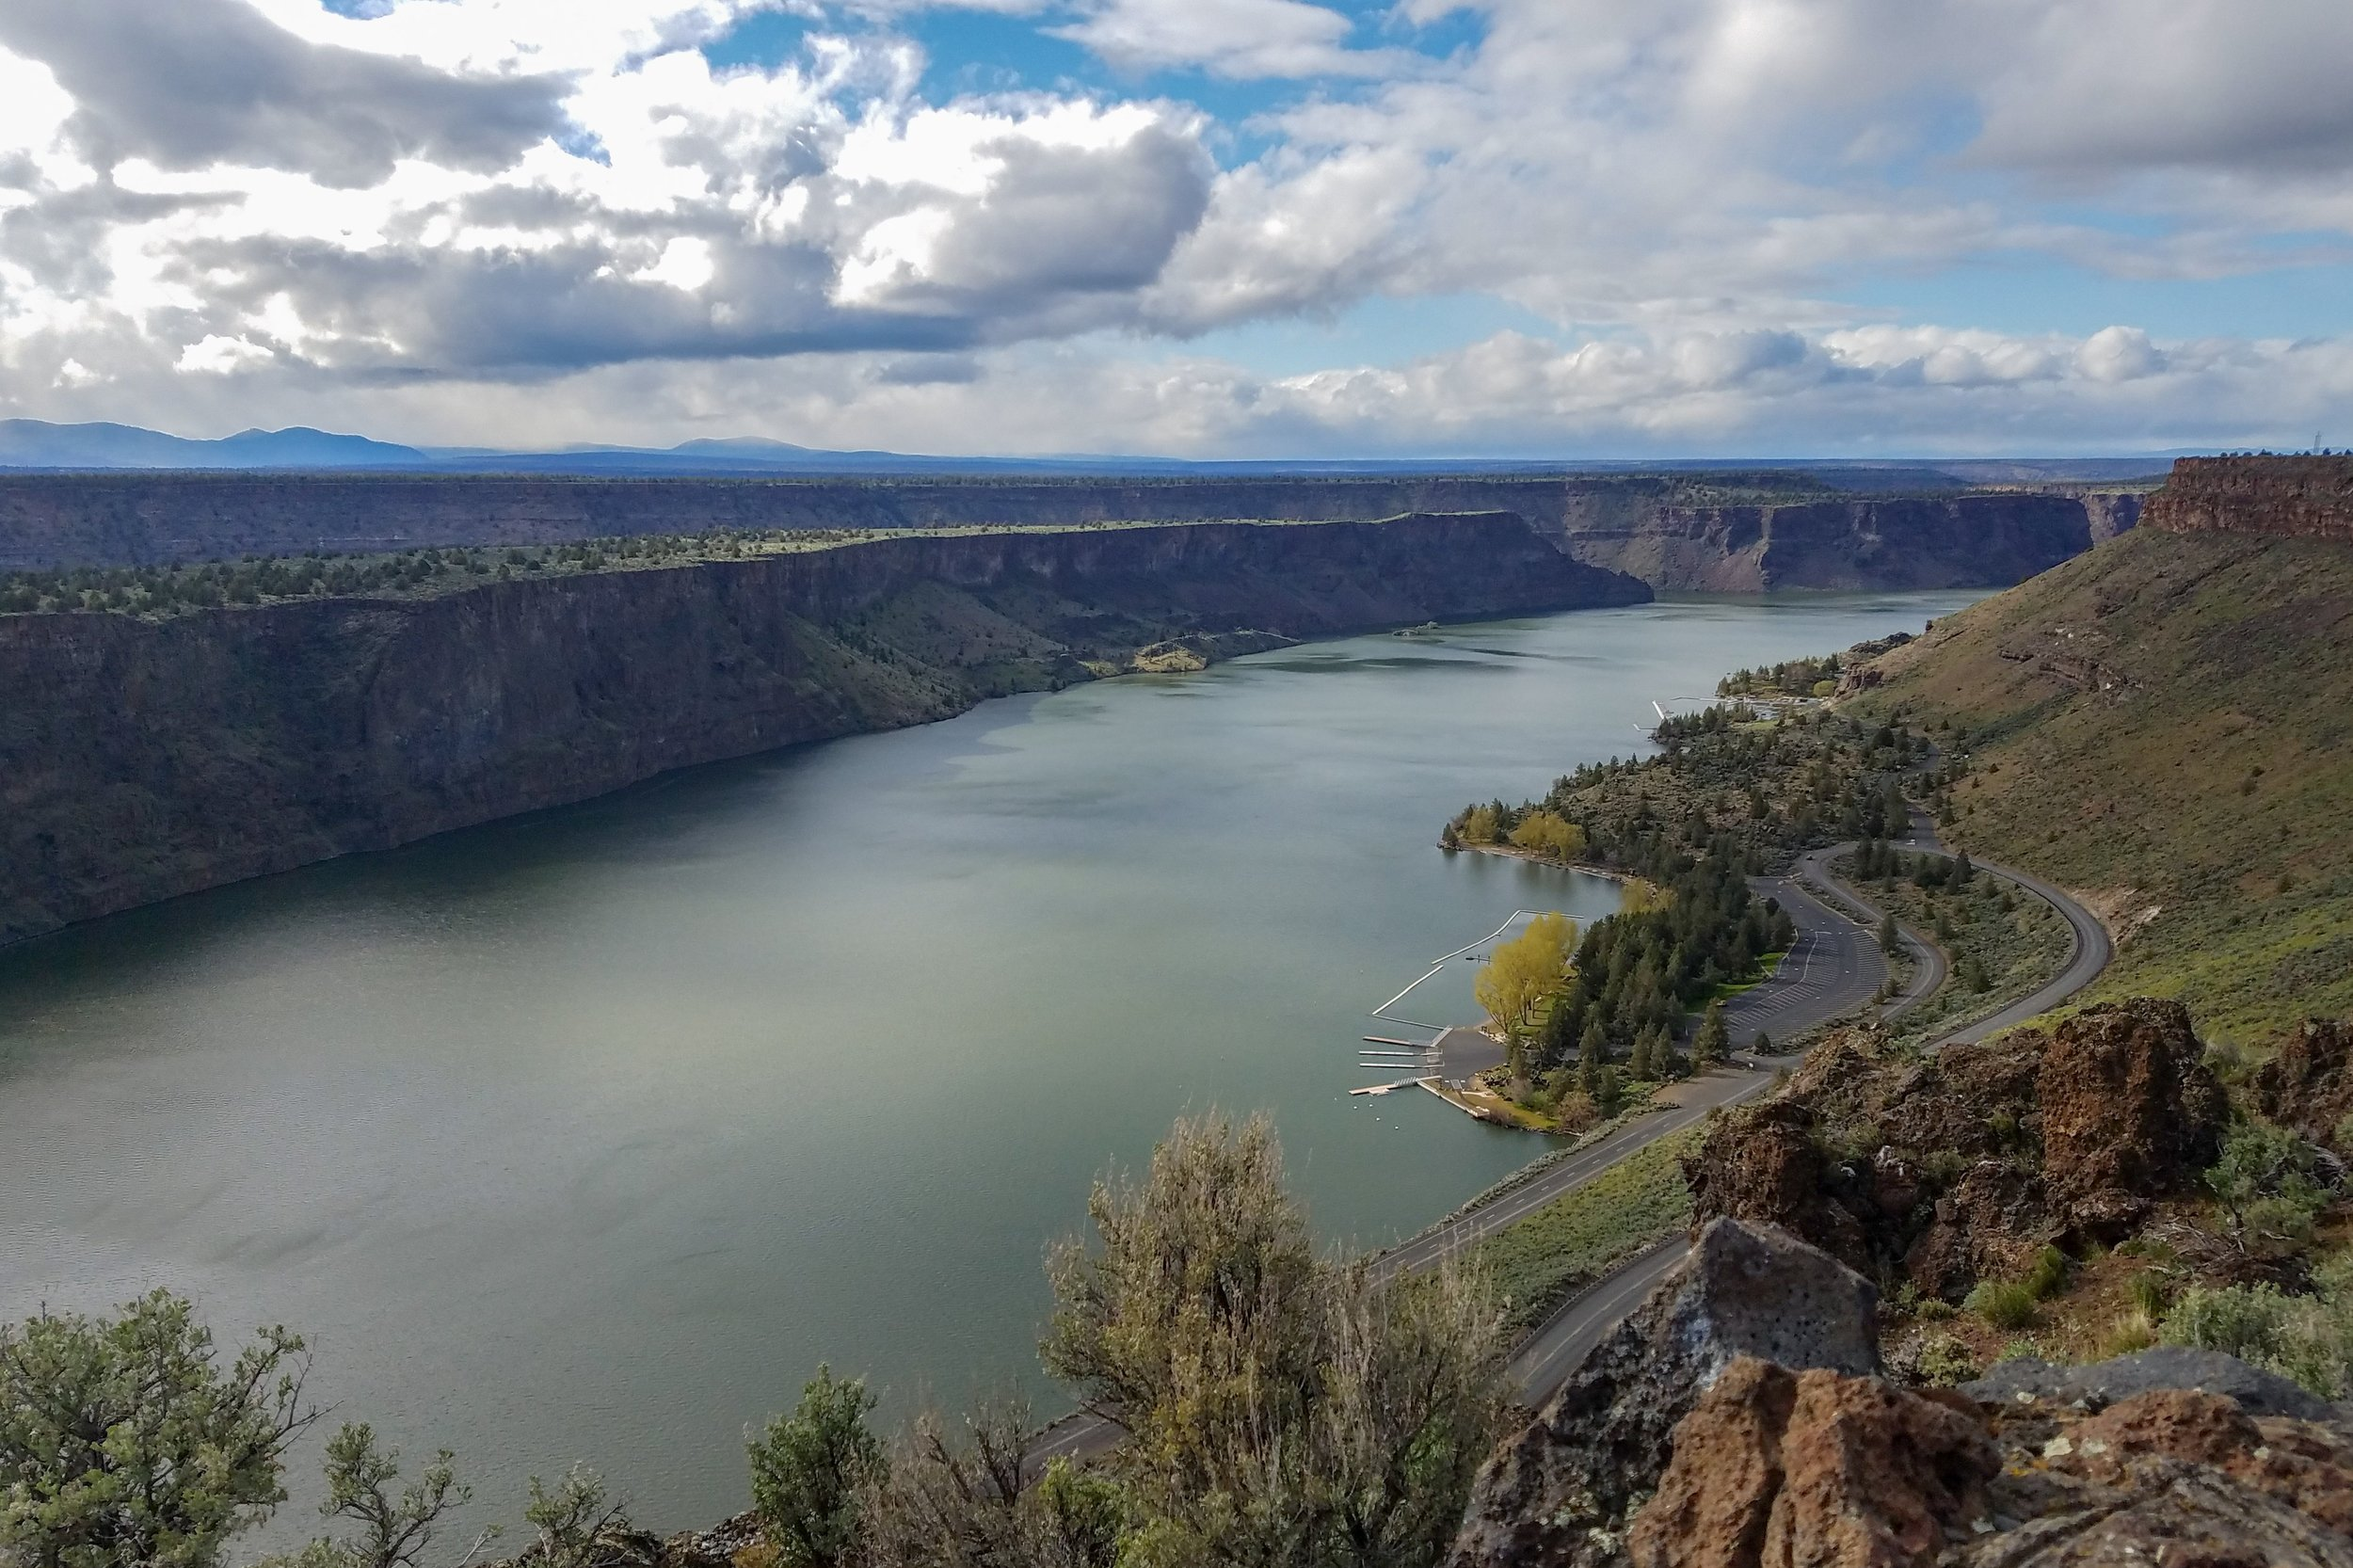 Cove Palisade State Park. Oregon. Stories of Splendid Wonders